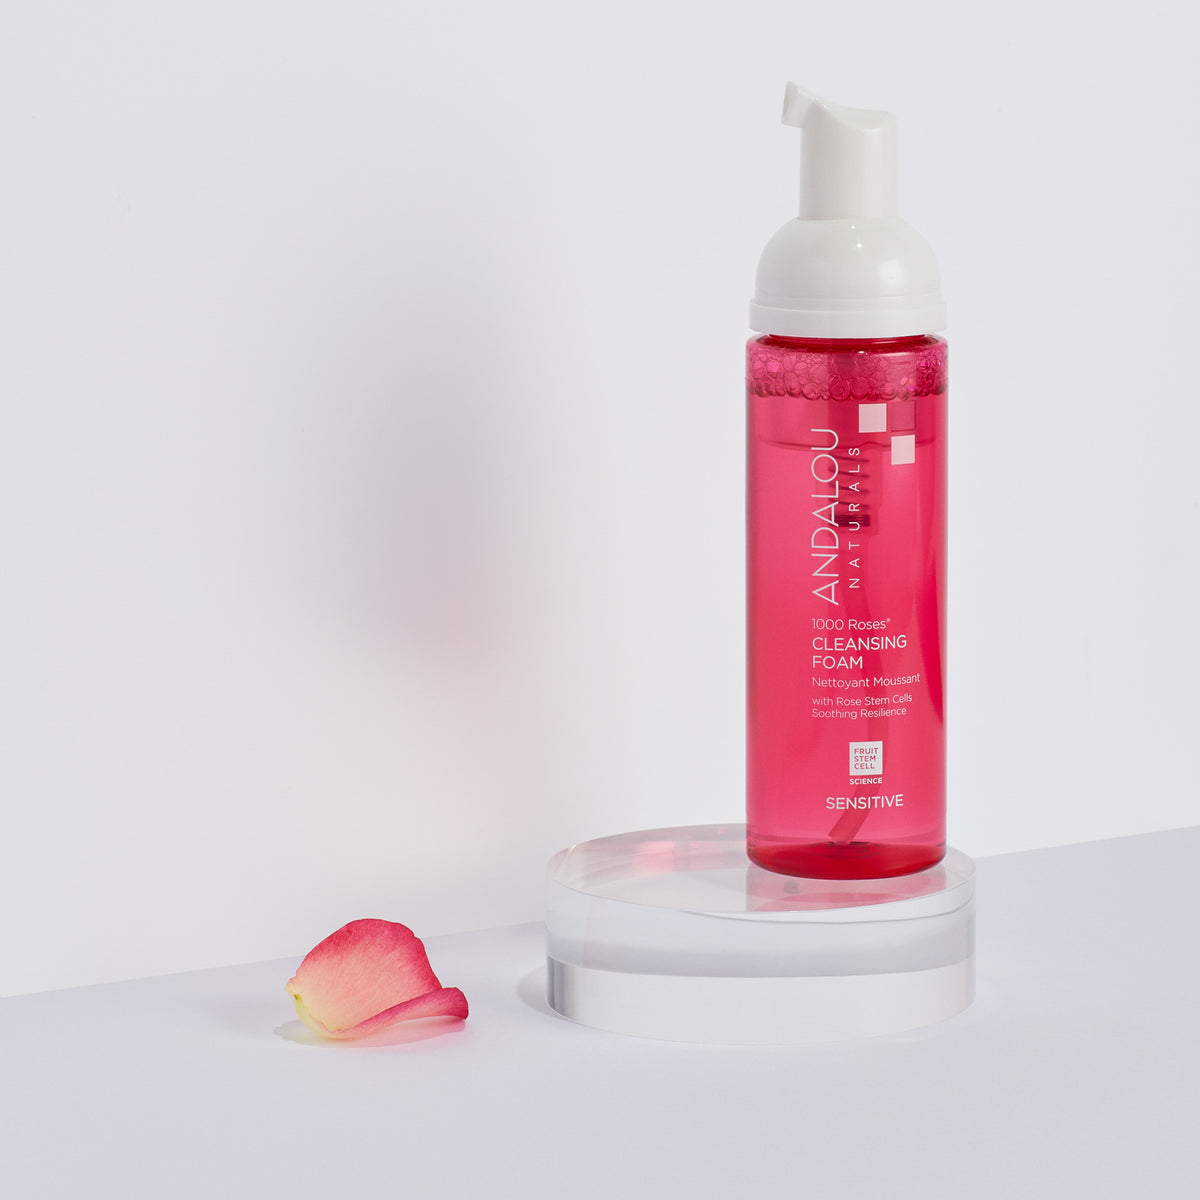 Andalou Naturals Sensitive 1000 Roses Cleansing Foam bottle with a rose petal